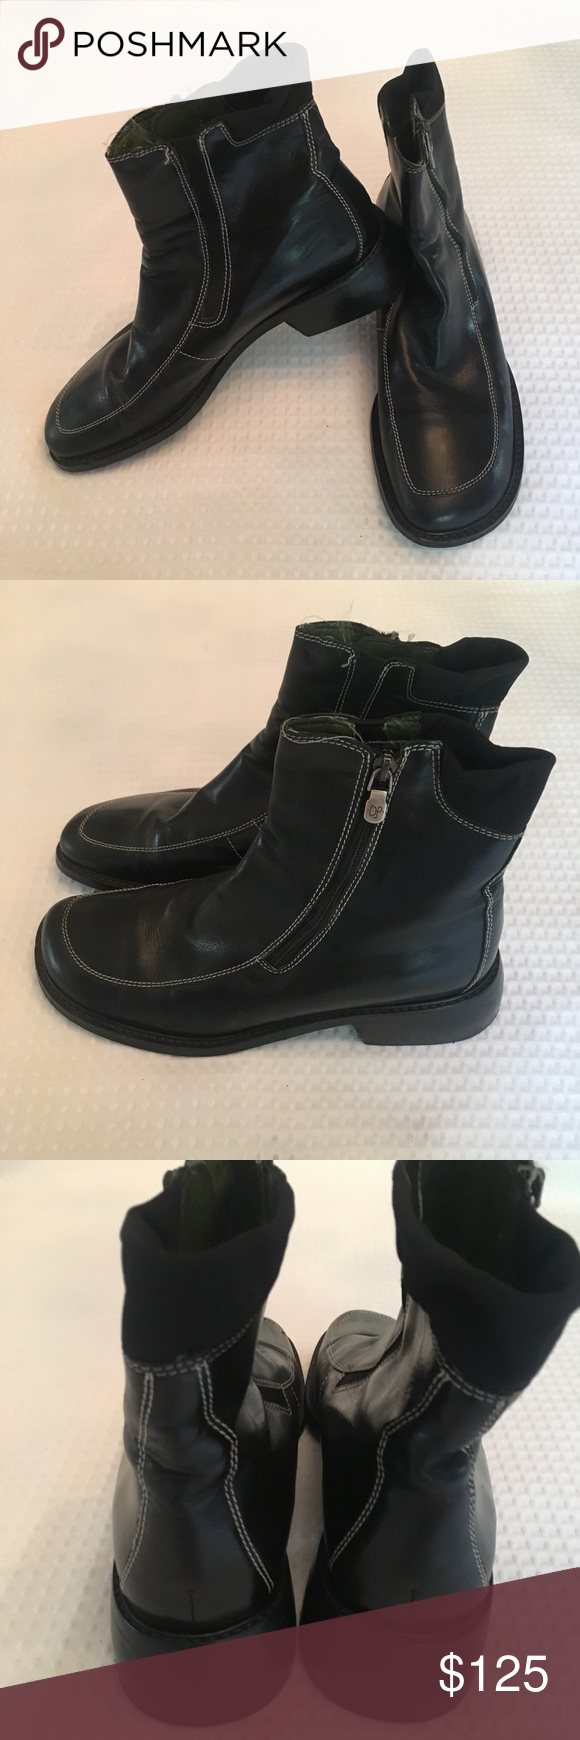 a5f3bf67e03 Donald J. Pliner Wide Toe Bootie Super comfy walking shoe with wide toe  area. Like new. Barely worn. Kept nicely polished. Donald J. Pliner Shoes  Ankle ...